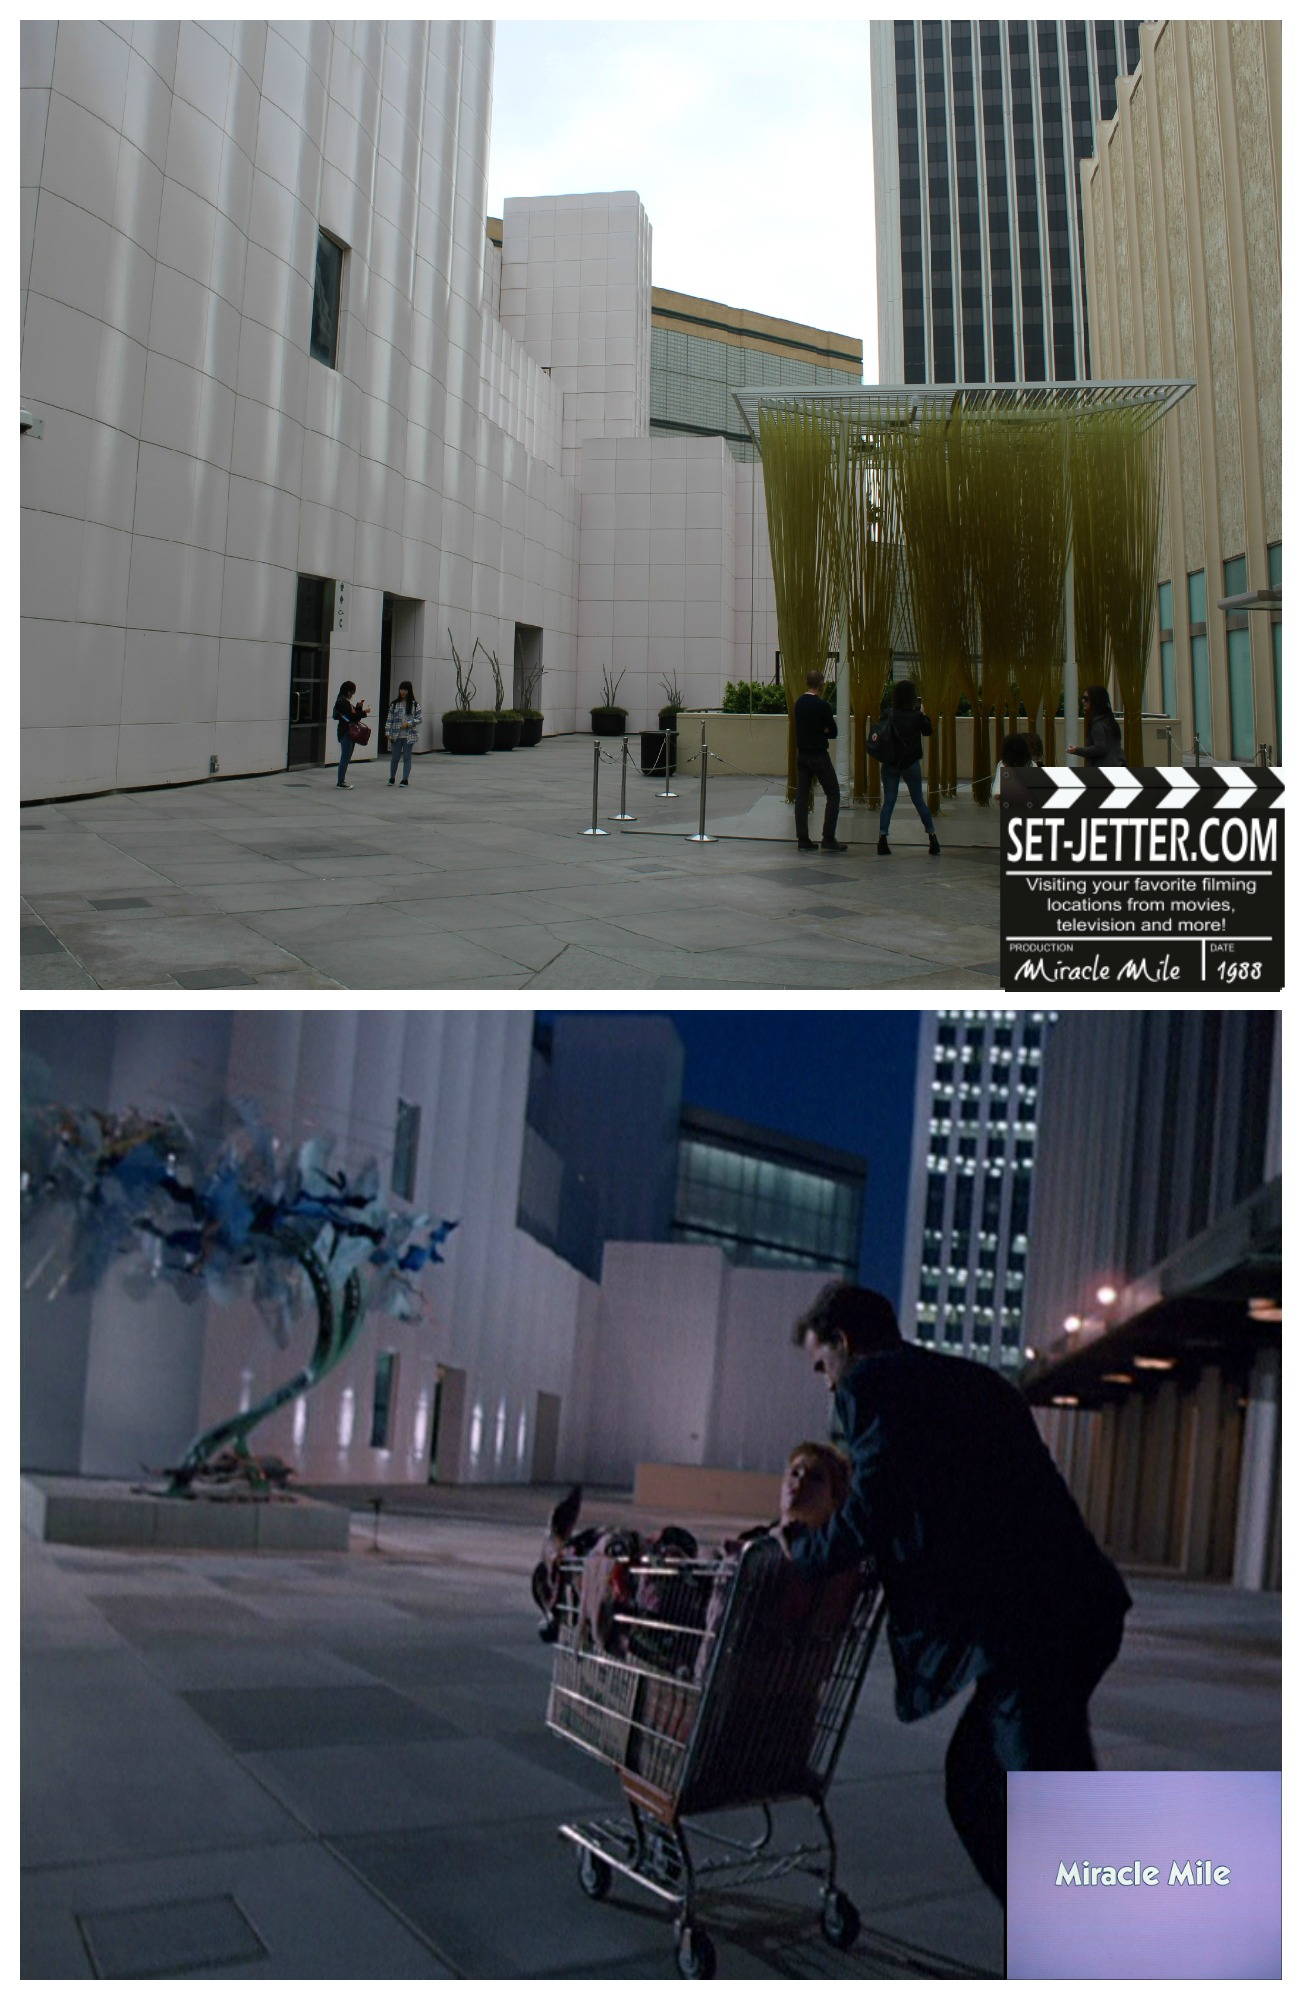 Miracle Mile comparison 24.jpg